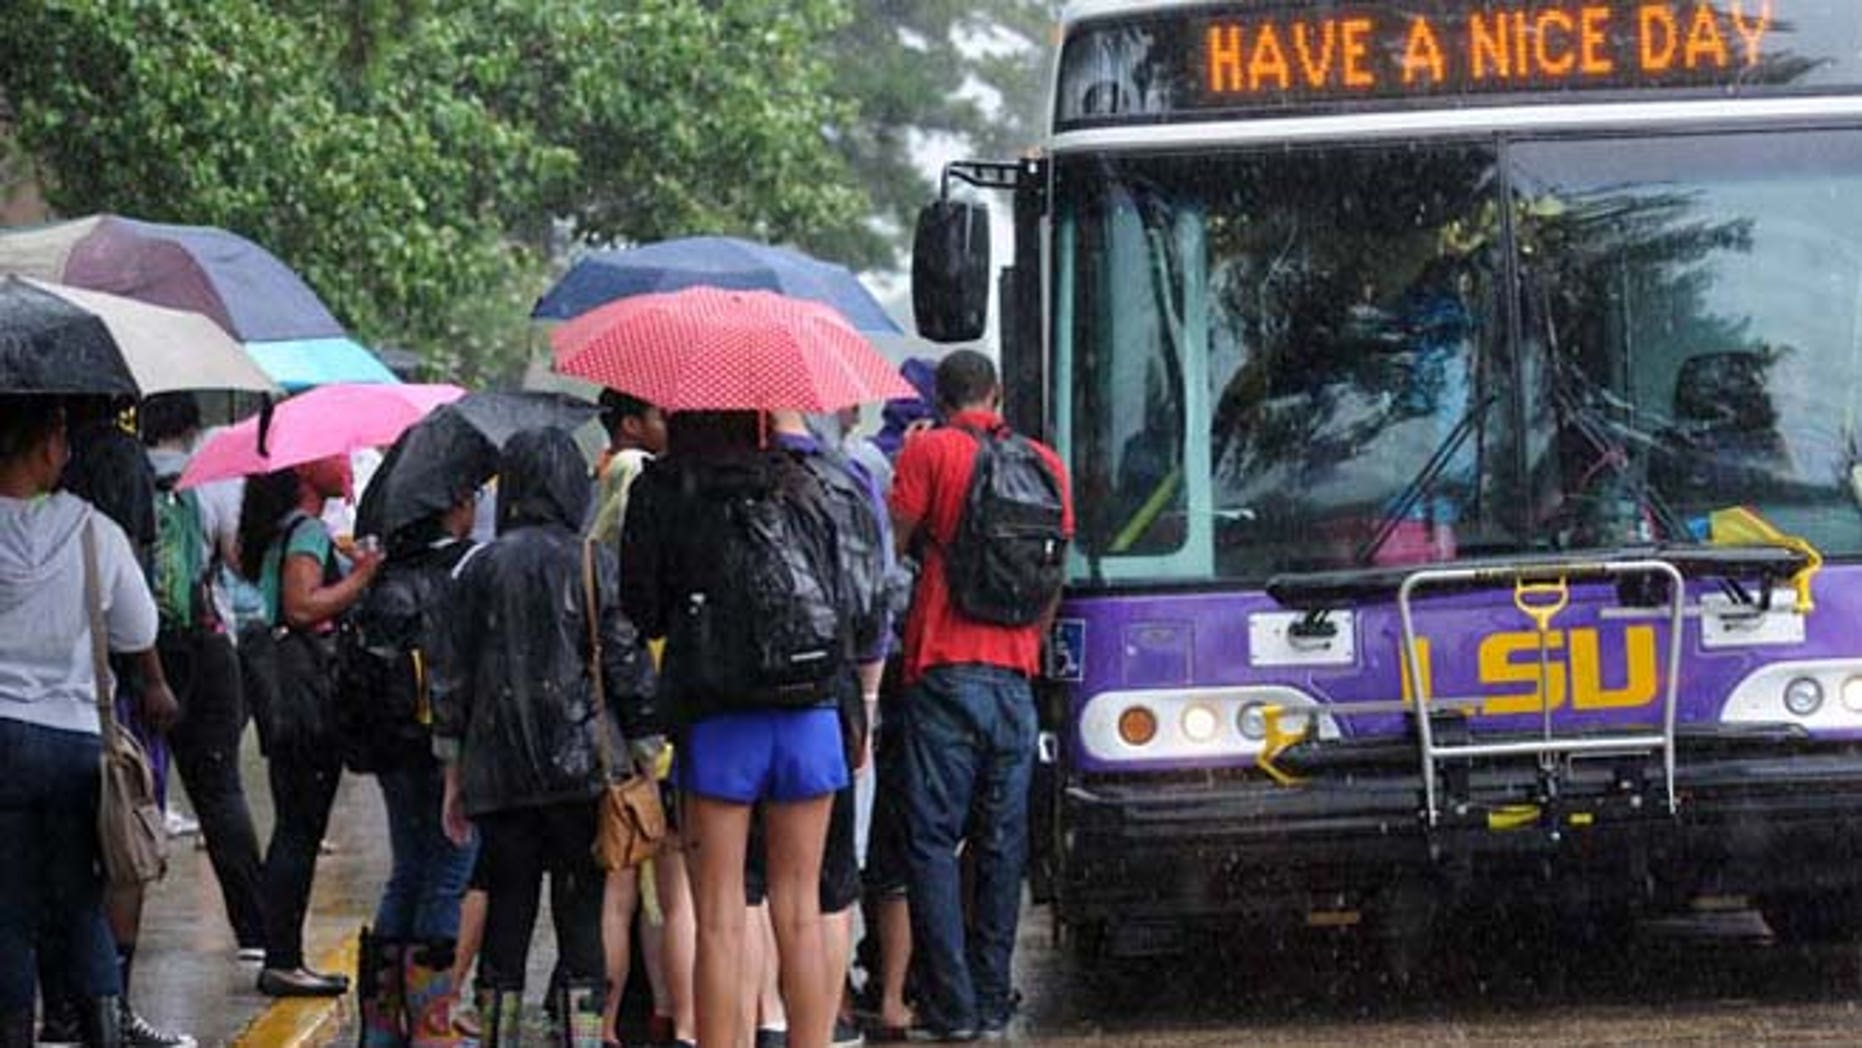 Sept. 17, 2012: LSU students wait for buses to take them off campus after a bomb scare.